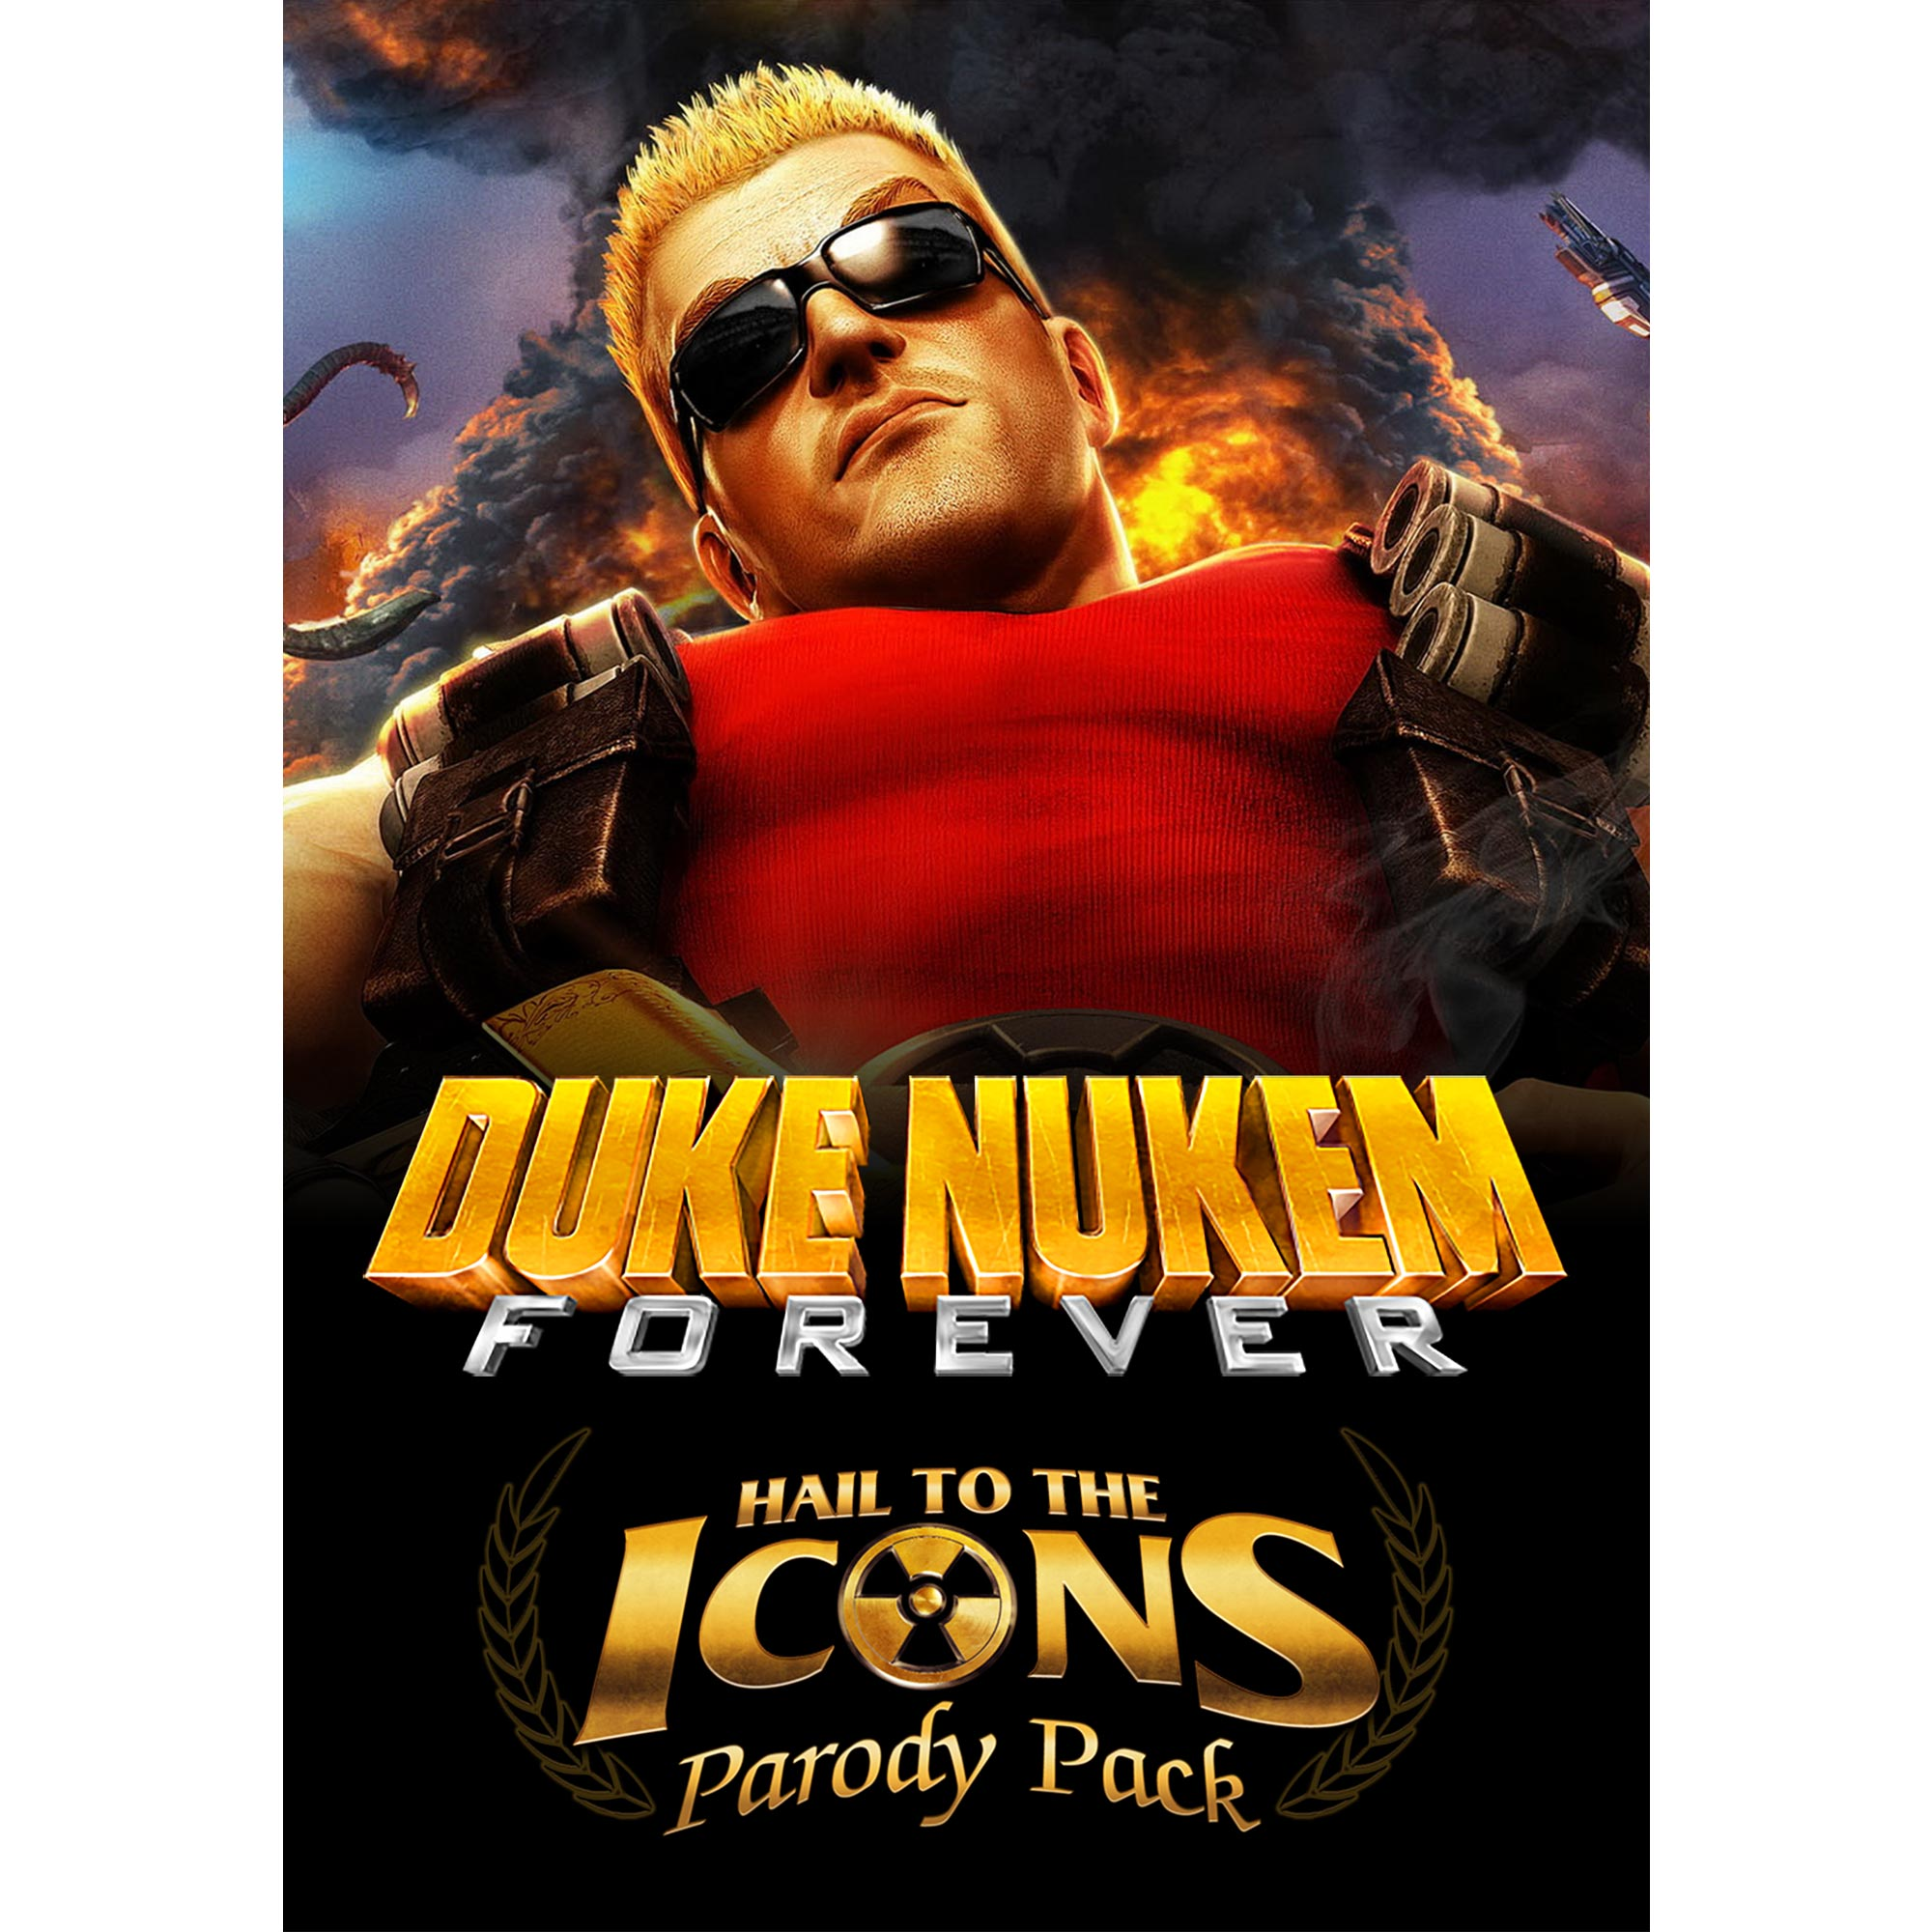 Duke Nukem Forever: Hail to the Icons Parody DLC (PC)(Digital Download)